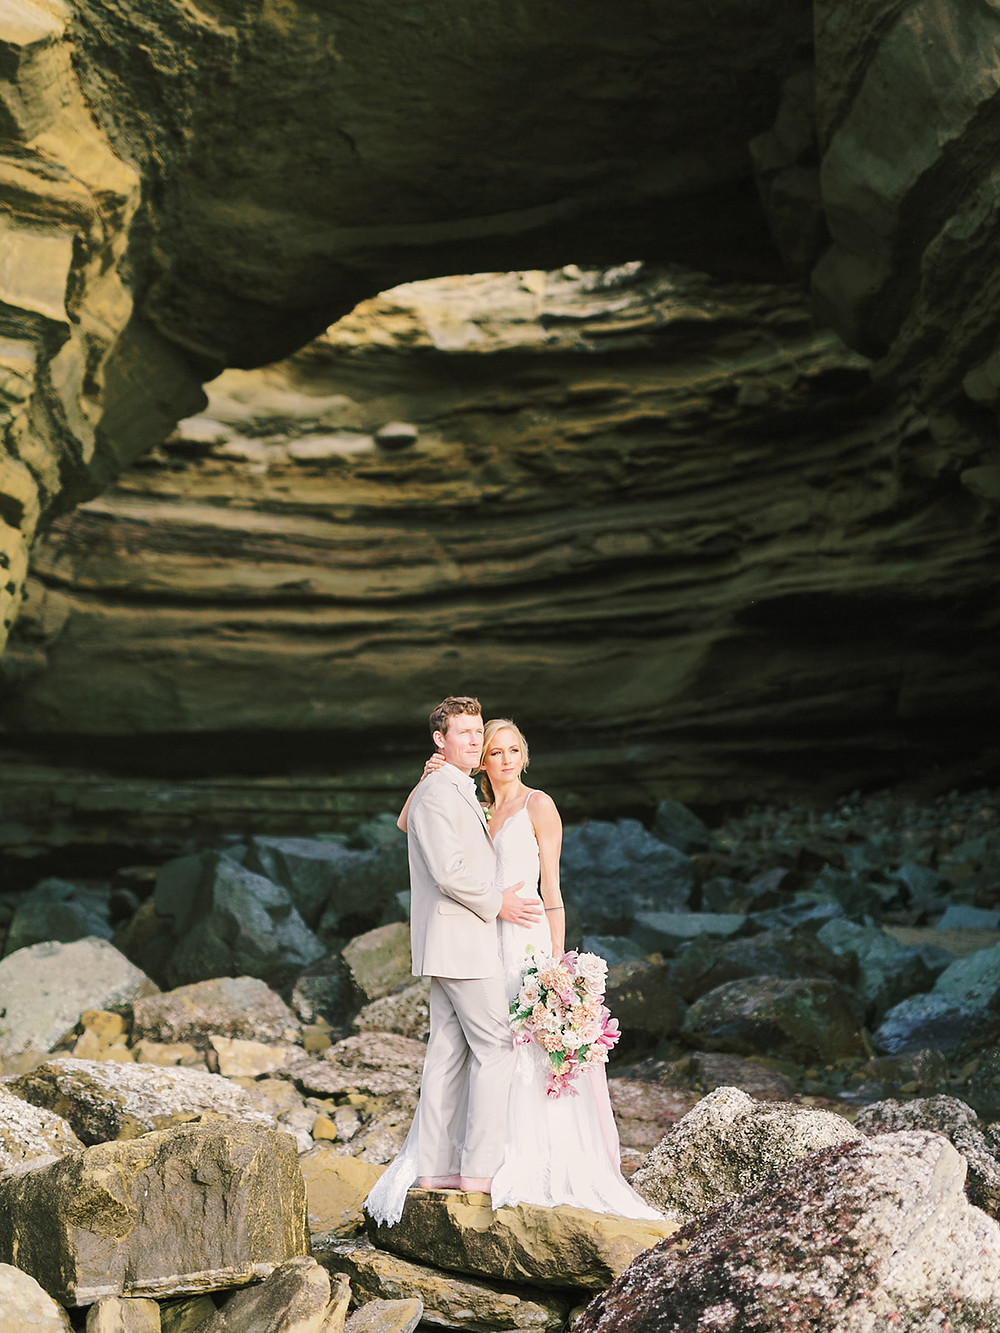 Sea Cave Elopement with Gorgeous Blush Bridal Bouquet This adventurous couple scaled down the cliffs at a rare low tide at Sunset Cliffs in San Diego, CA to take epic photos in the open air sea cave with a lush, organic blush bouquet filled with orchids, roses and hellebores made by San Diego wedding florist Le Champagne Projects. #adventurebrides #sunsetcliffs #sunsetcliffssandiego #sandiegobeachwedding #sandiegoweddingflorist #sandiegoweddingflorist